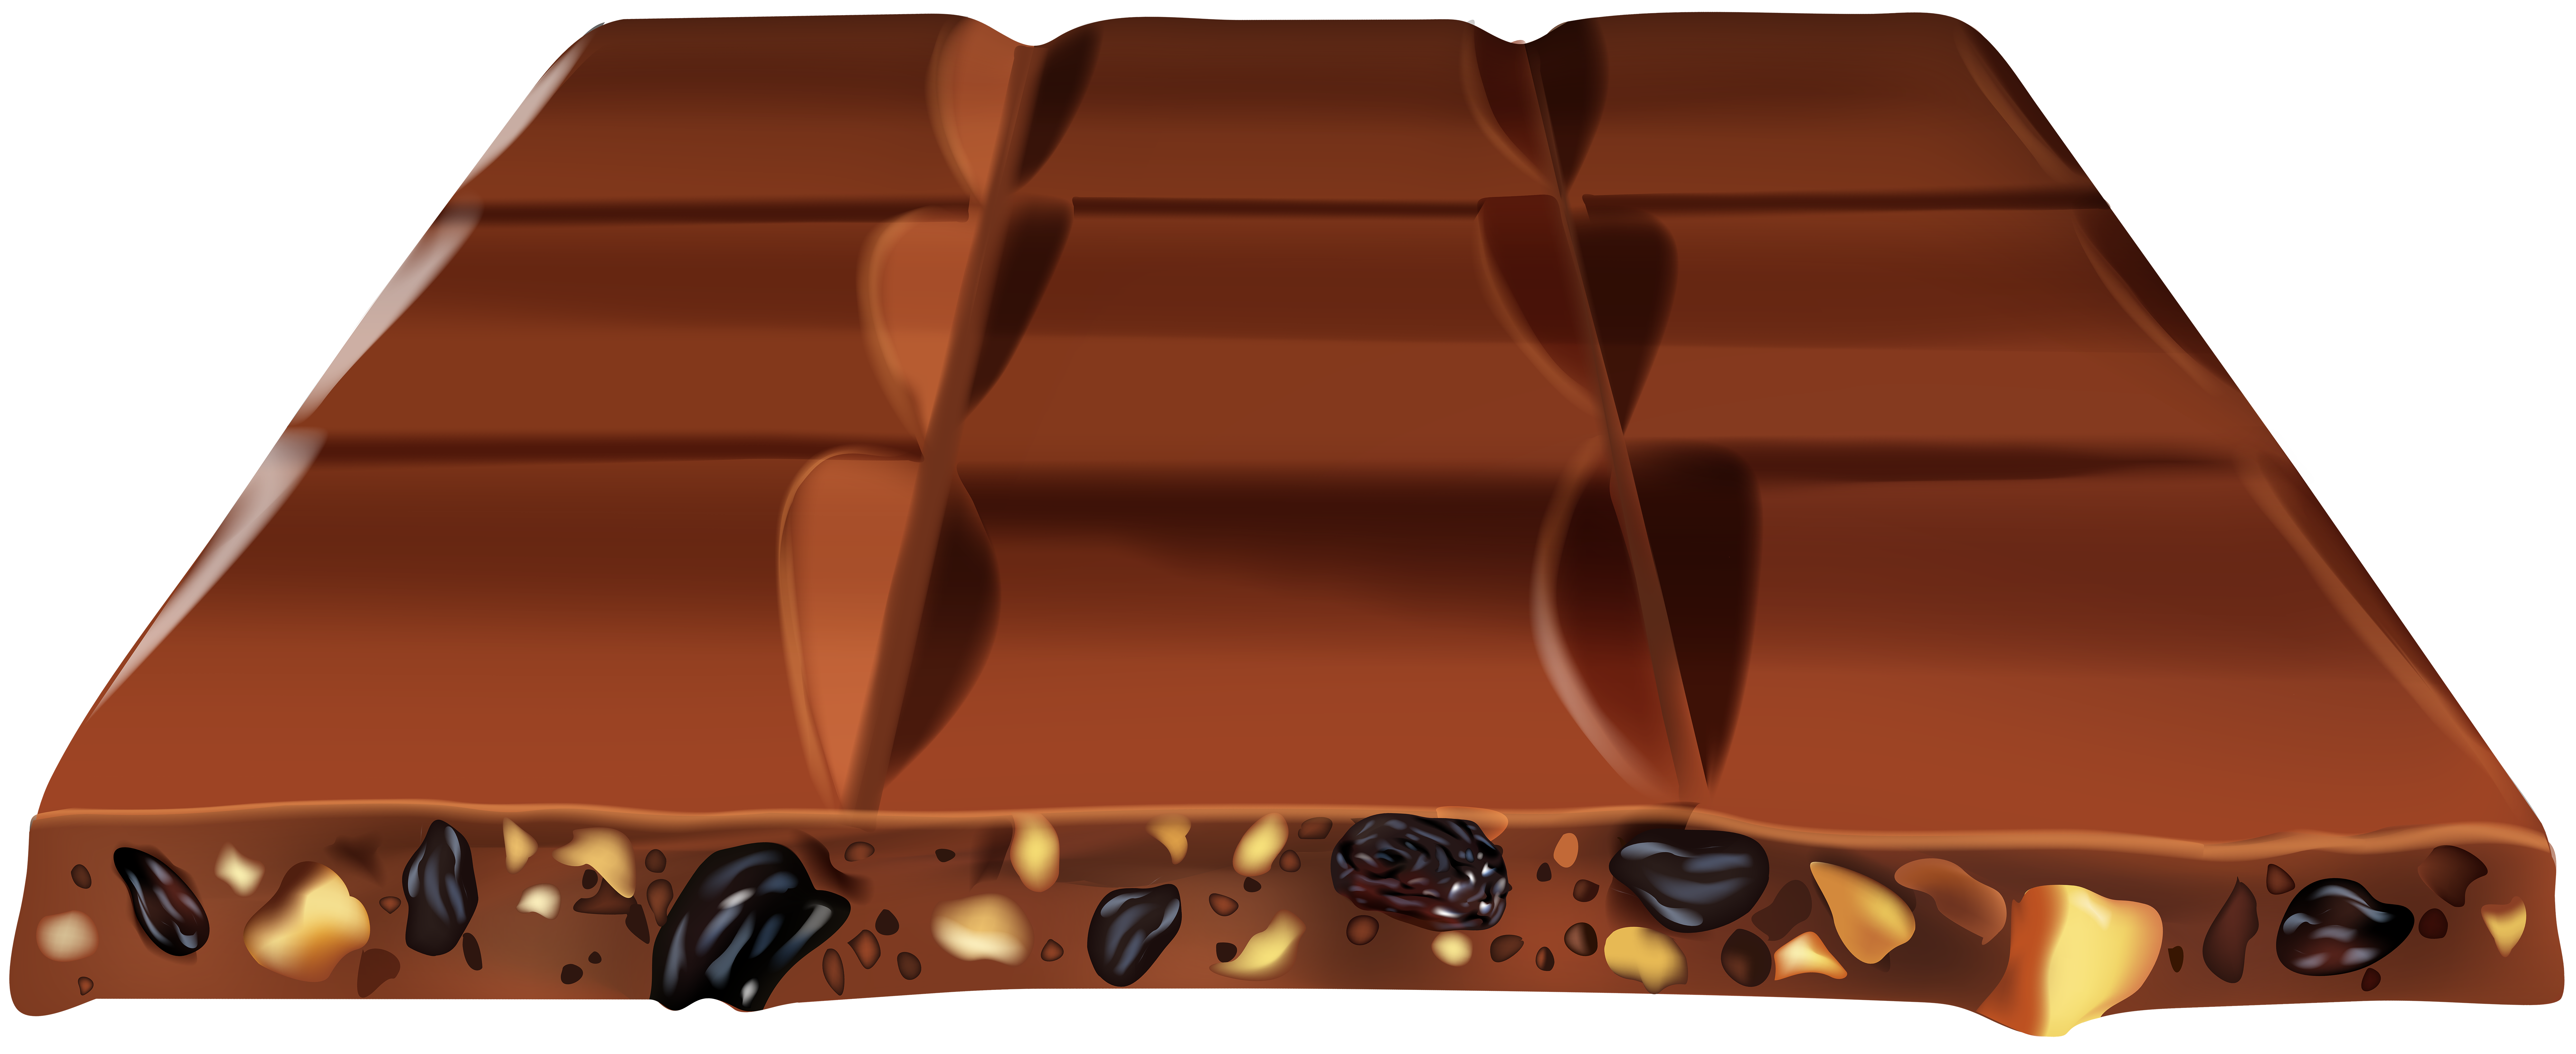 Walnut and chocolate clipart jpg Grain clipart nuts, Grain nuts Transparent FREE for download ... jpg